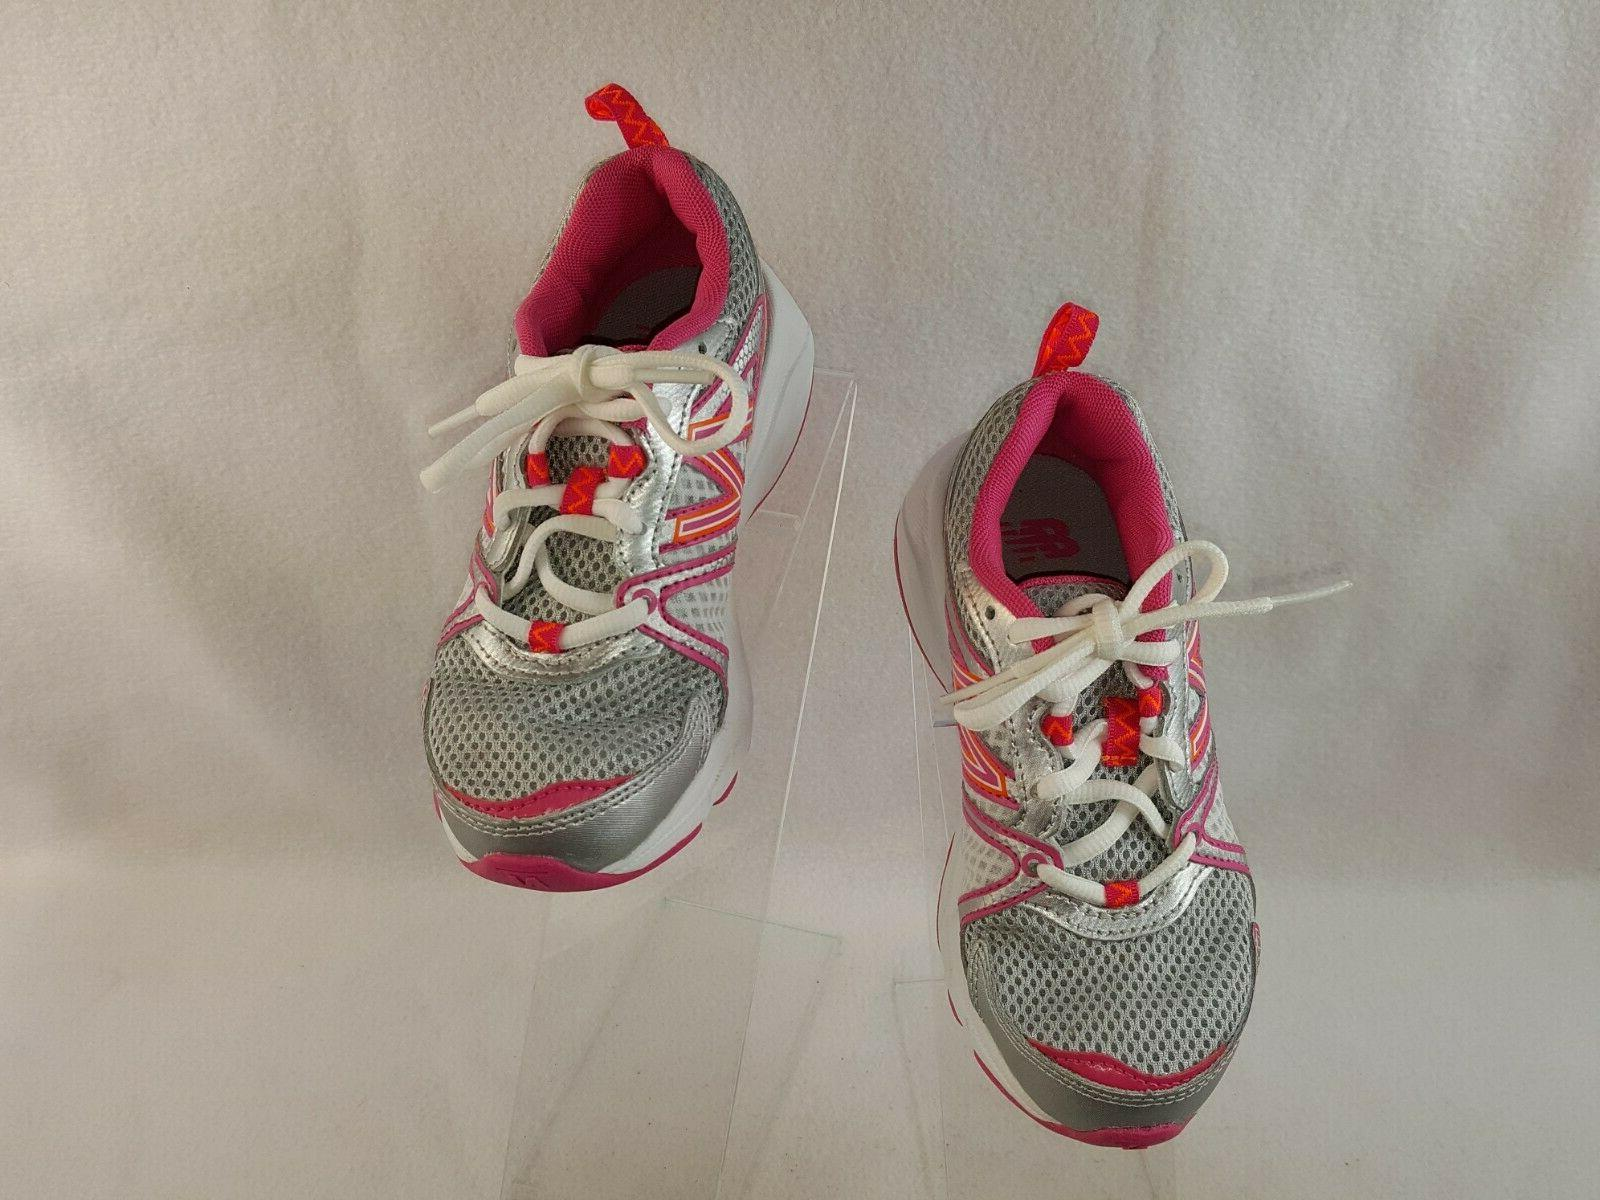 New Balance Shoes, Kids Girls Size Wide, Silver/Pink